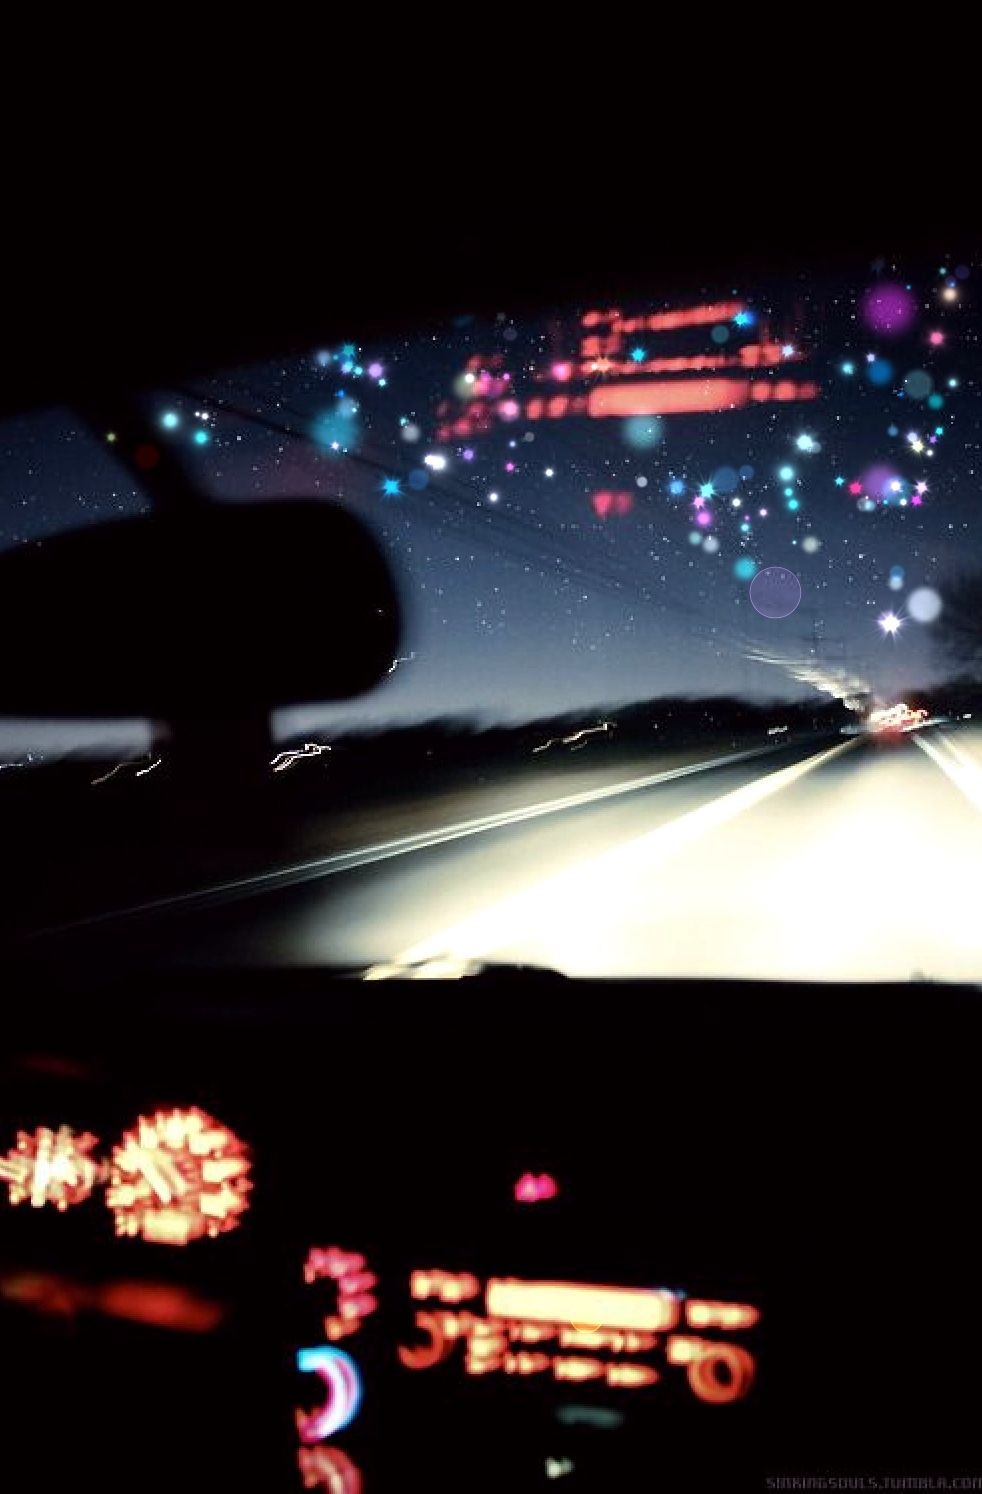 Night Driving I Love Everything More At Night Including A Peaceful